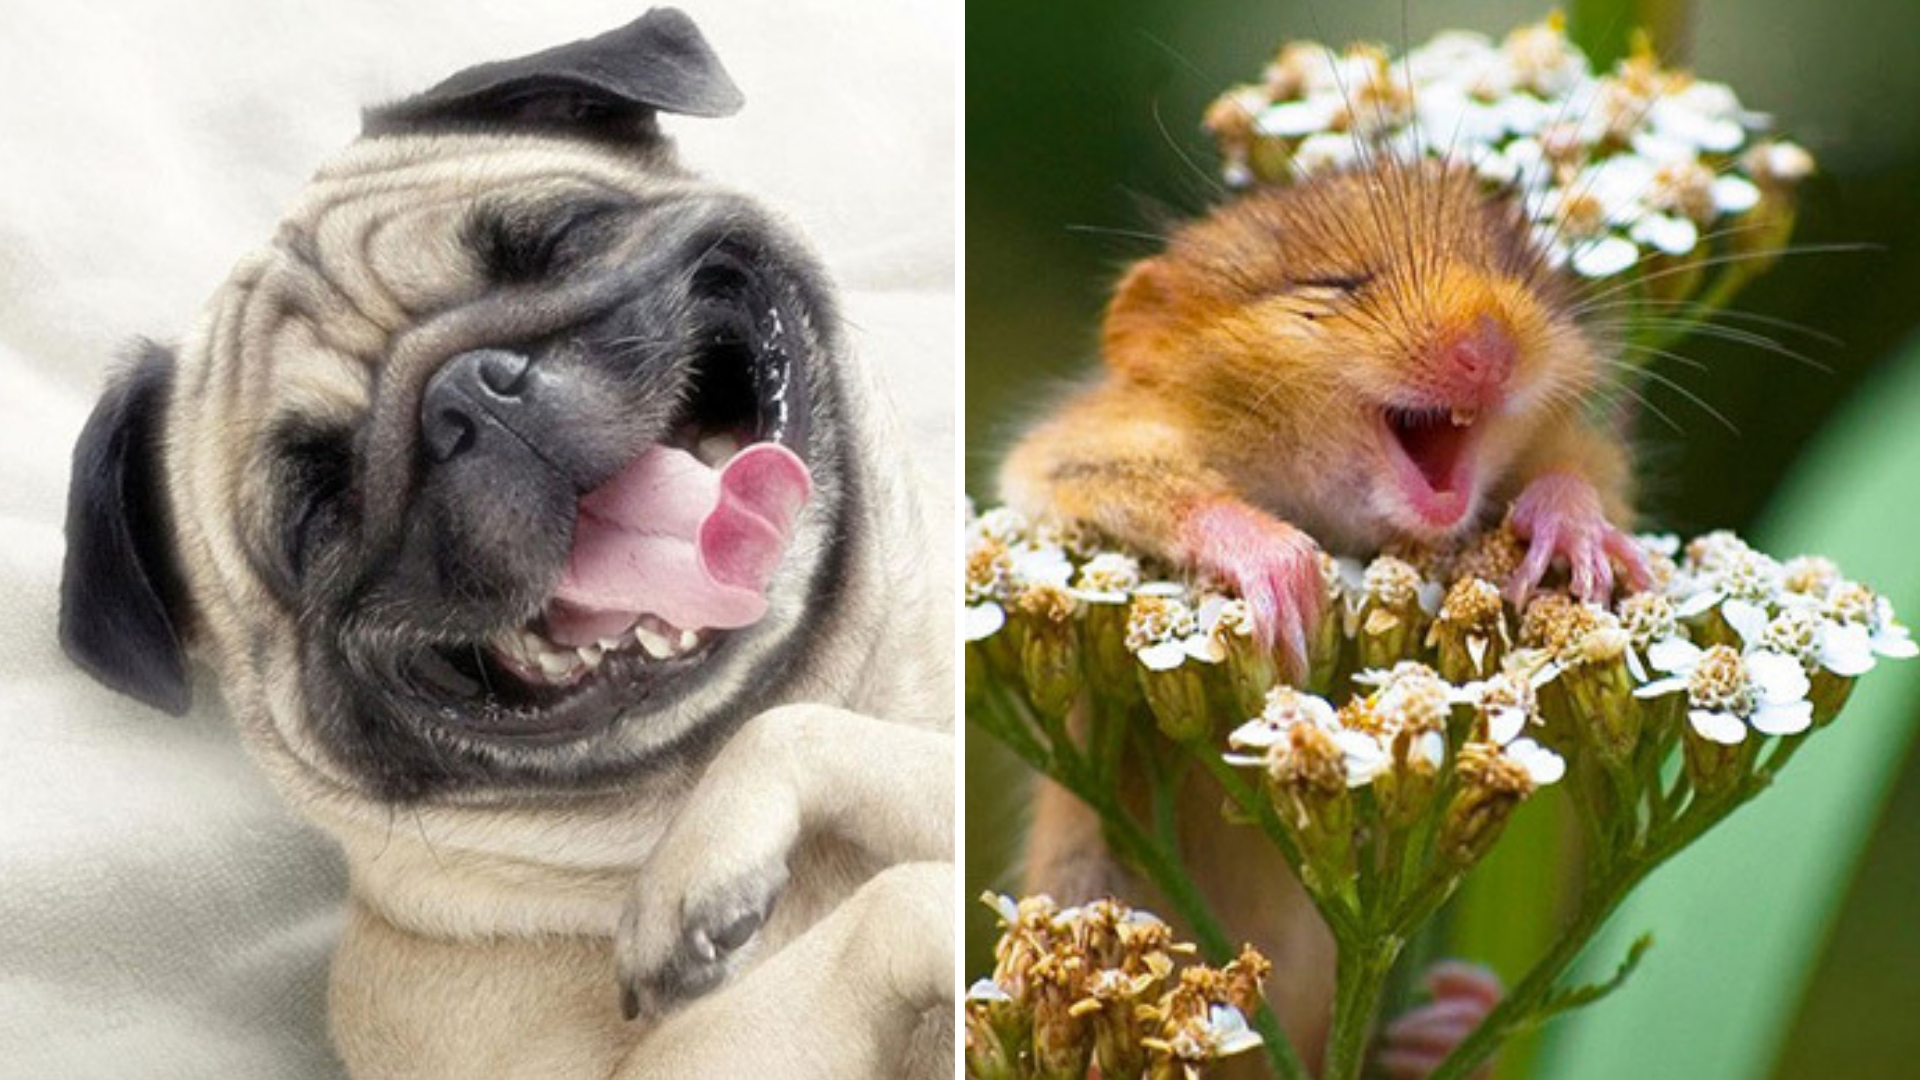 Funny Photos of Laughing Animals That Will Make You Giggle